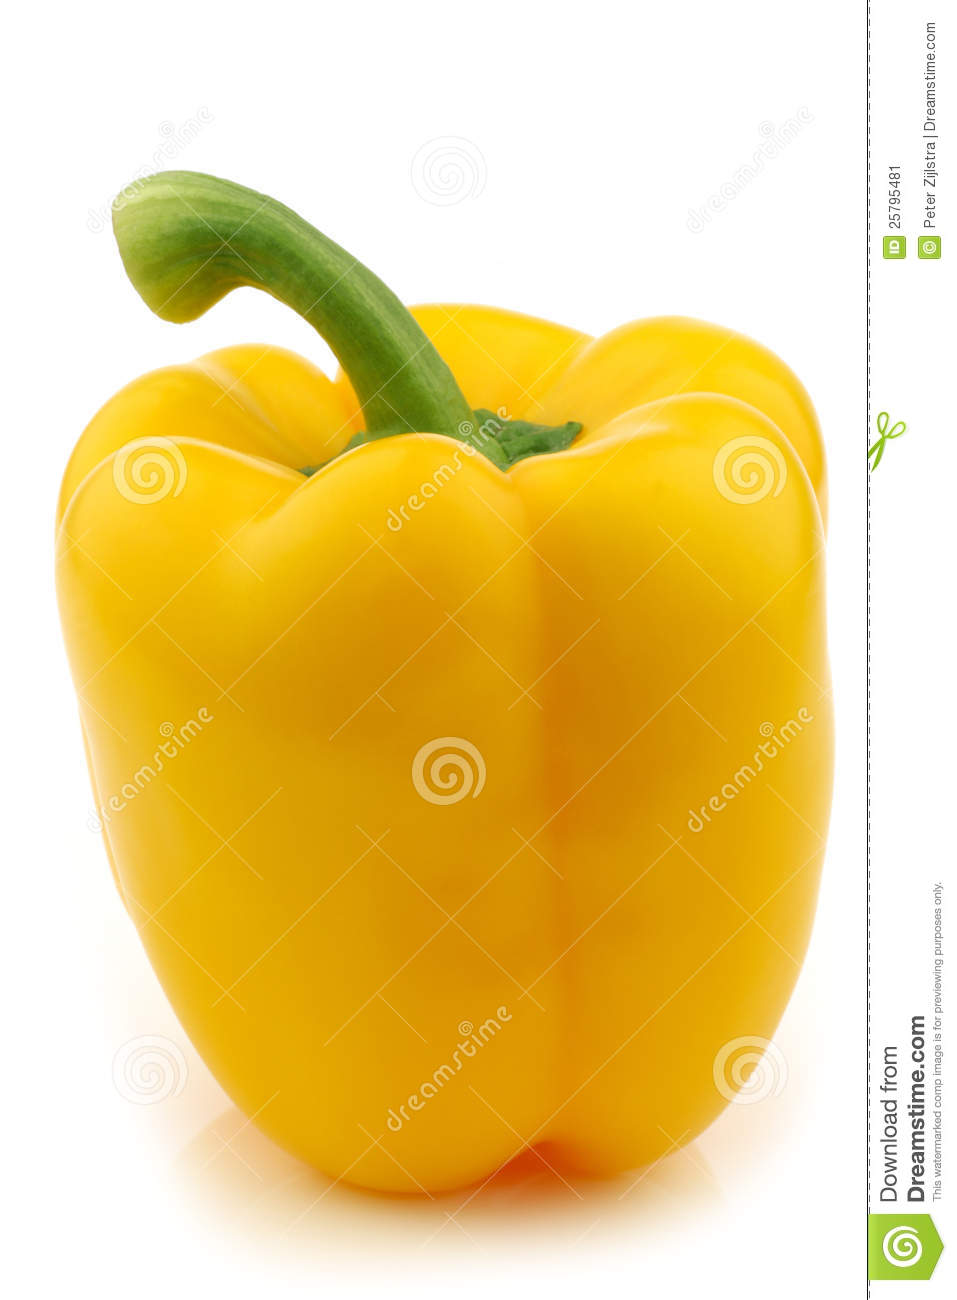 how to eat yellow capsicum